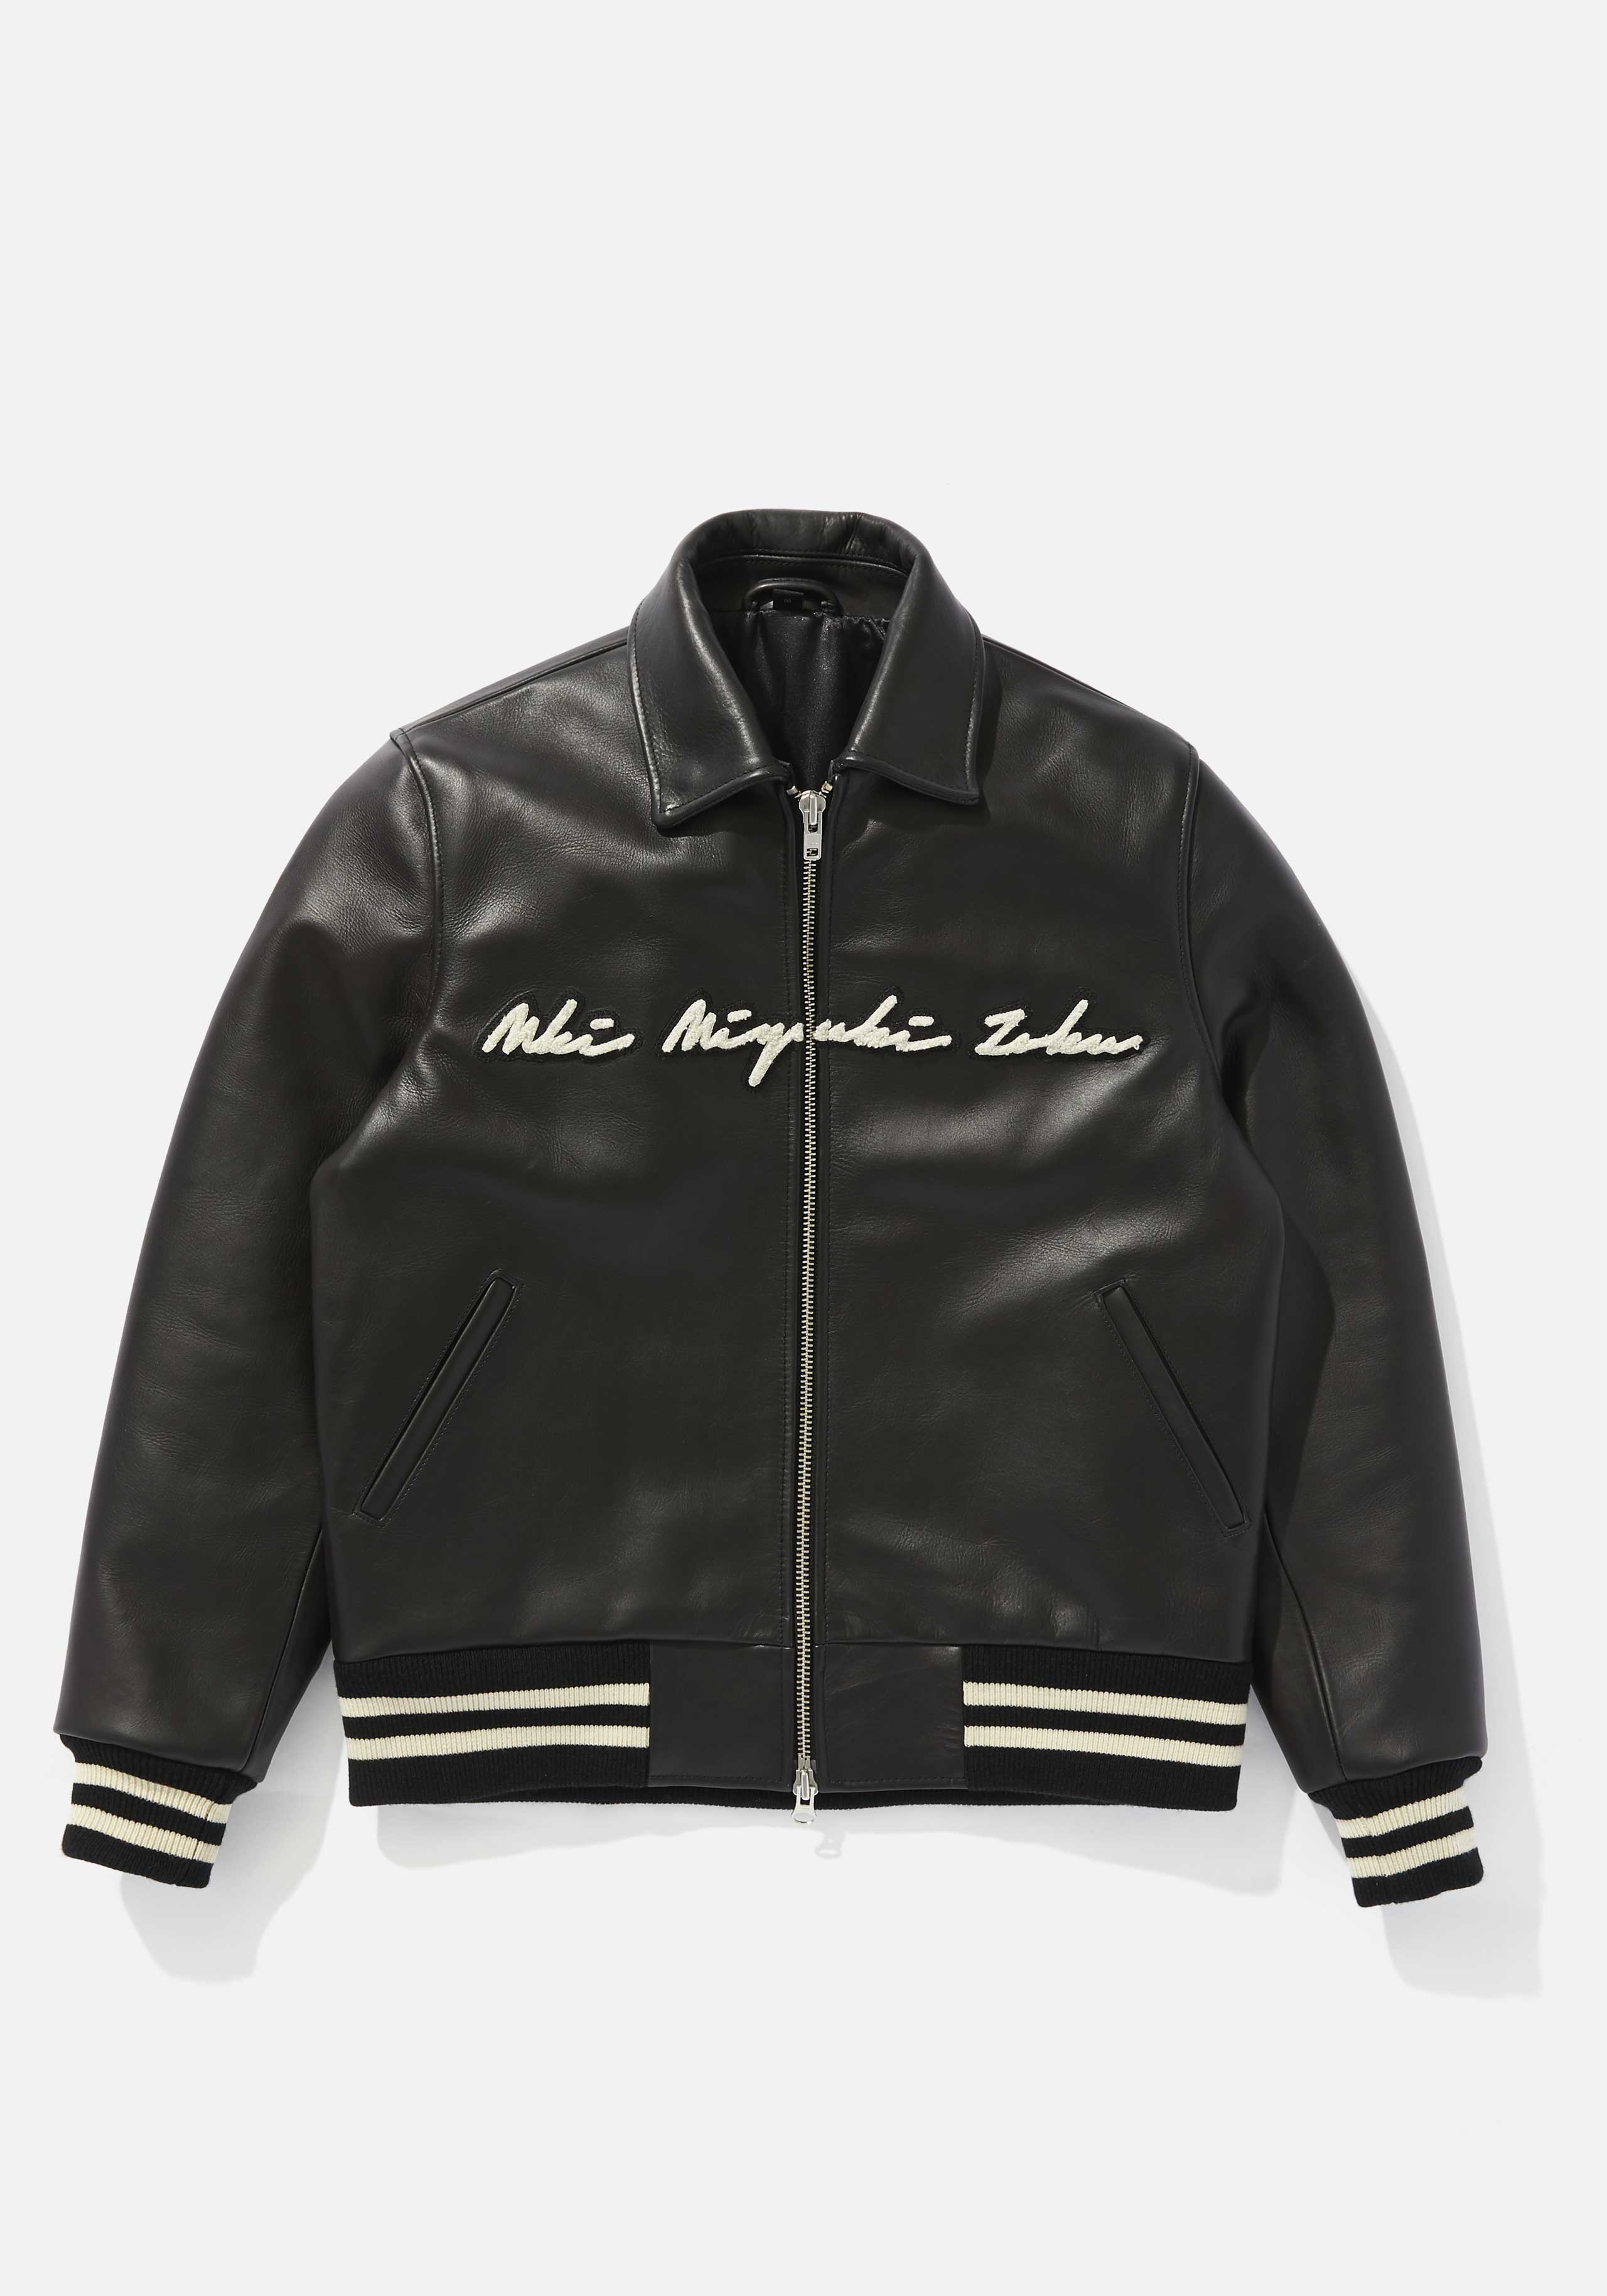 mki full leather rider varsity 1